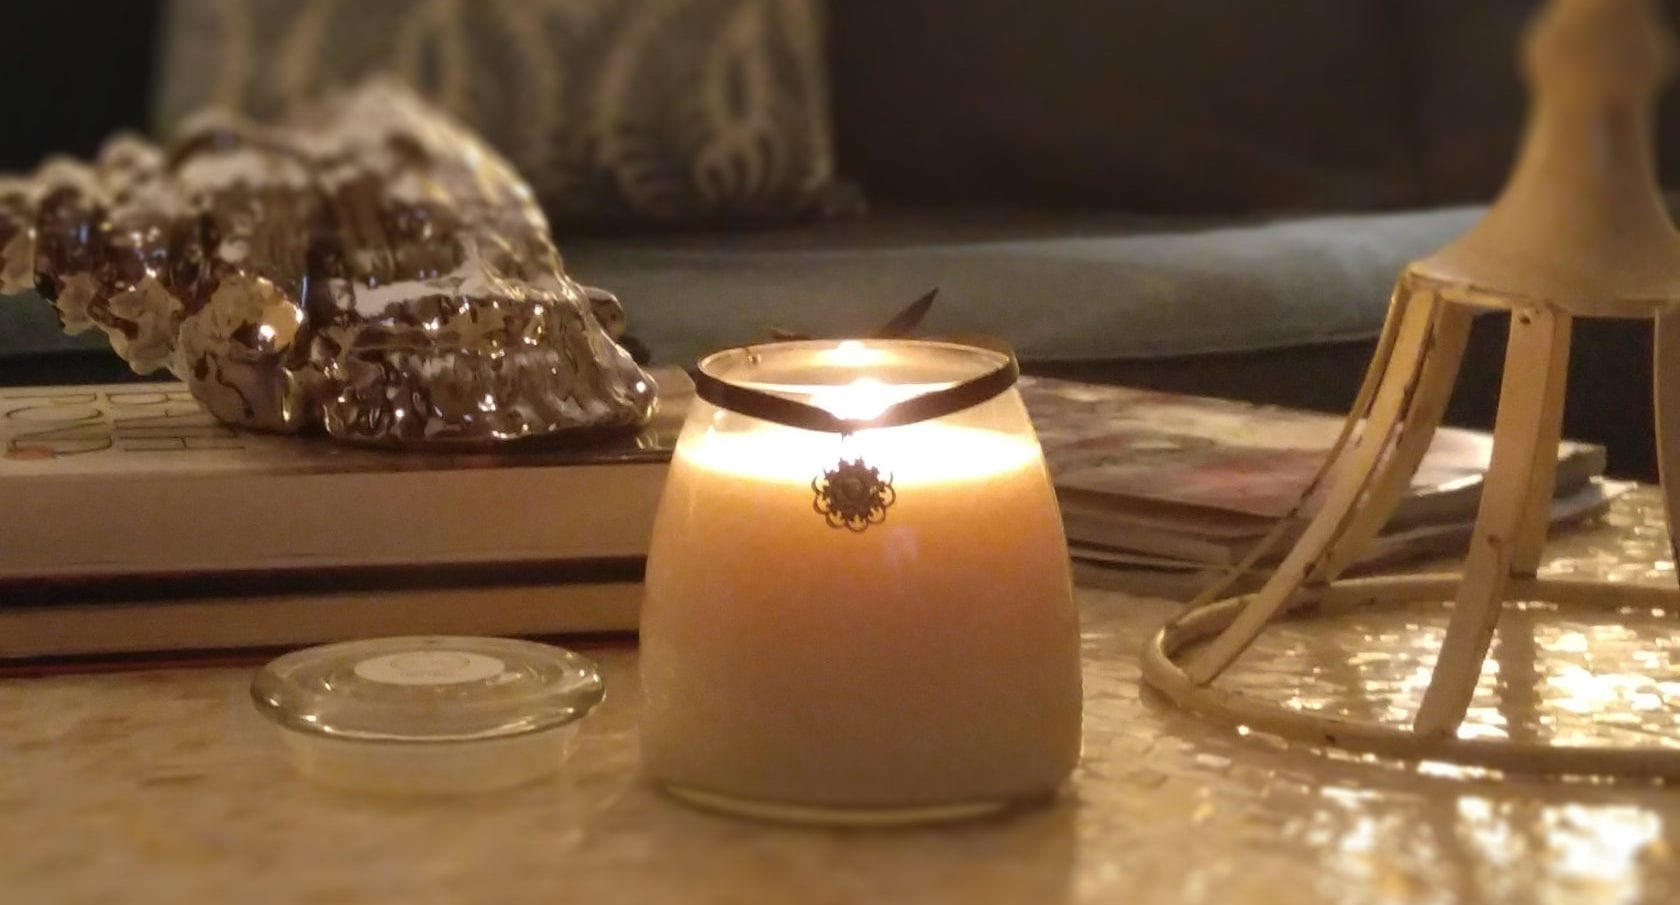 Citrus Blossom Soy Candles Sharing Happiness One Candle At A Time